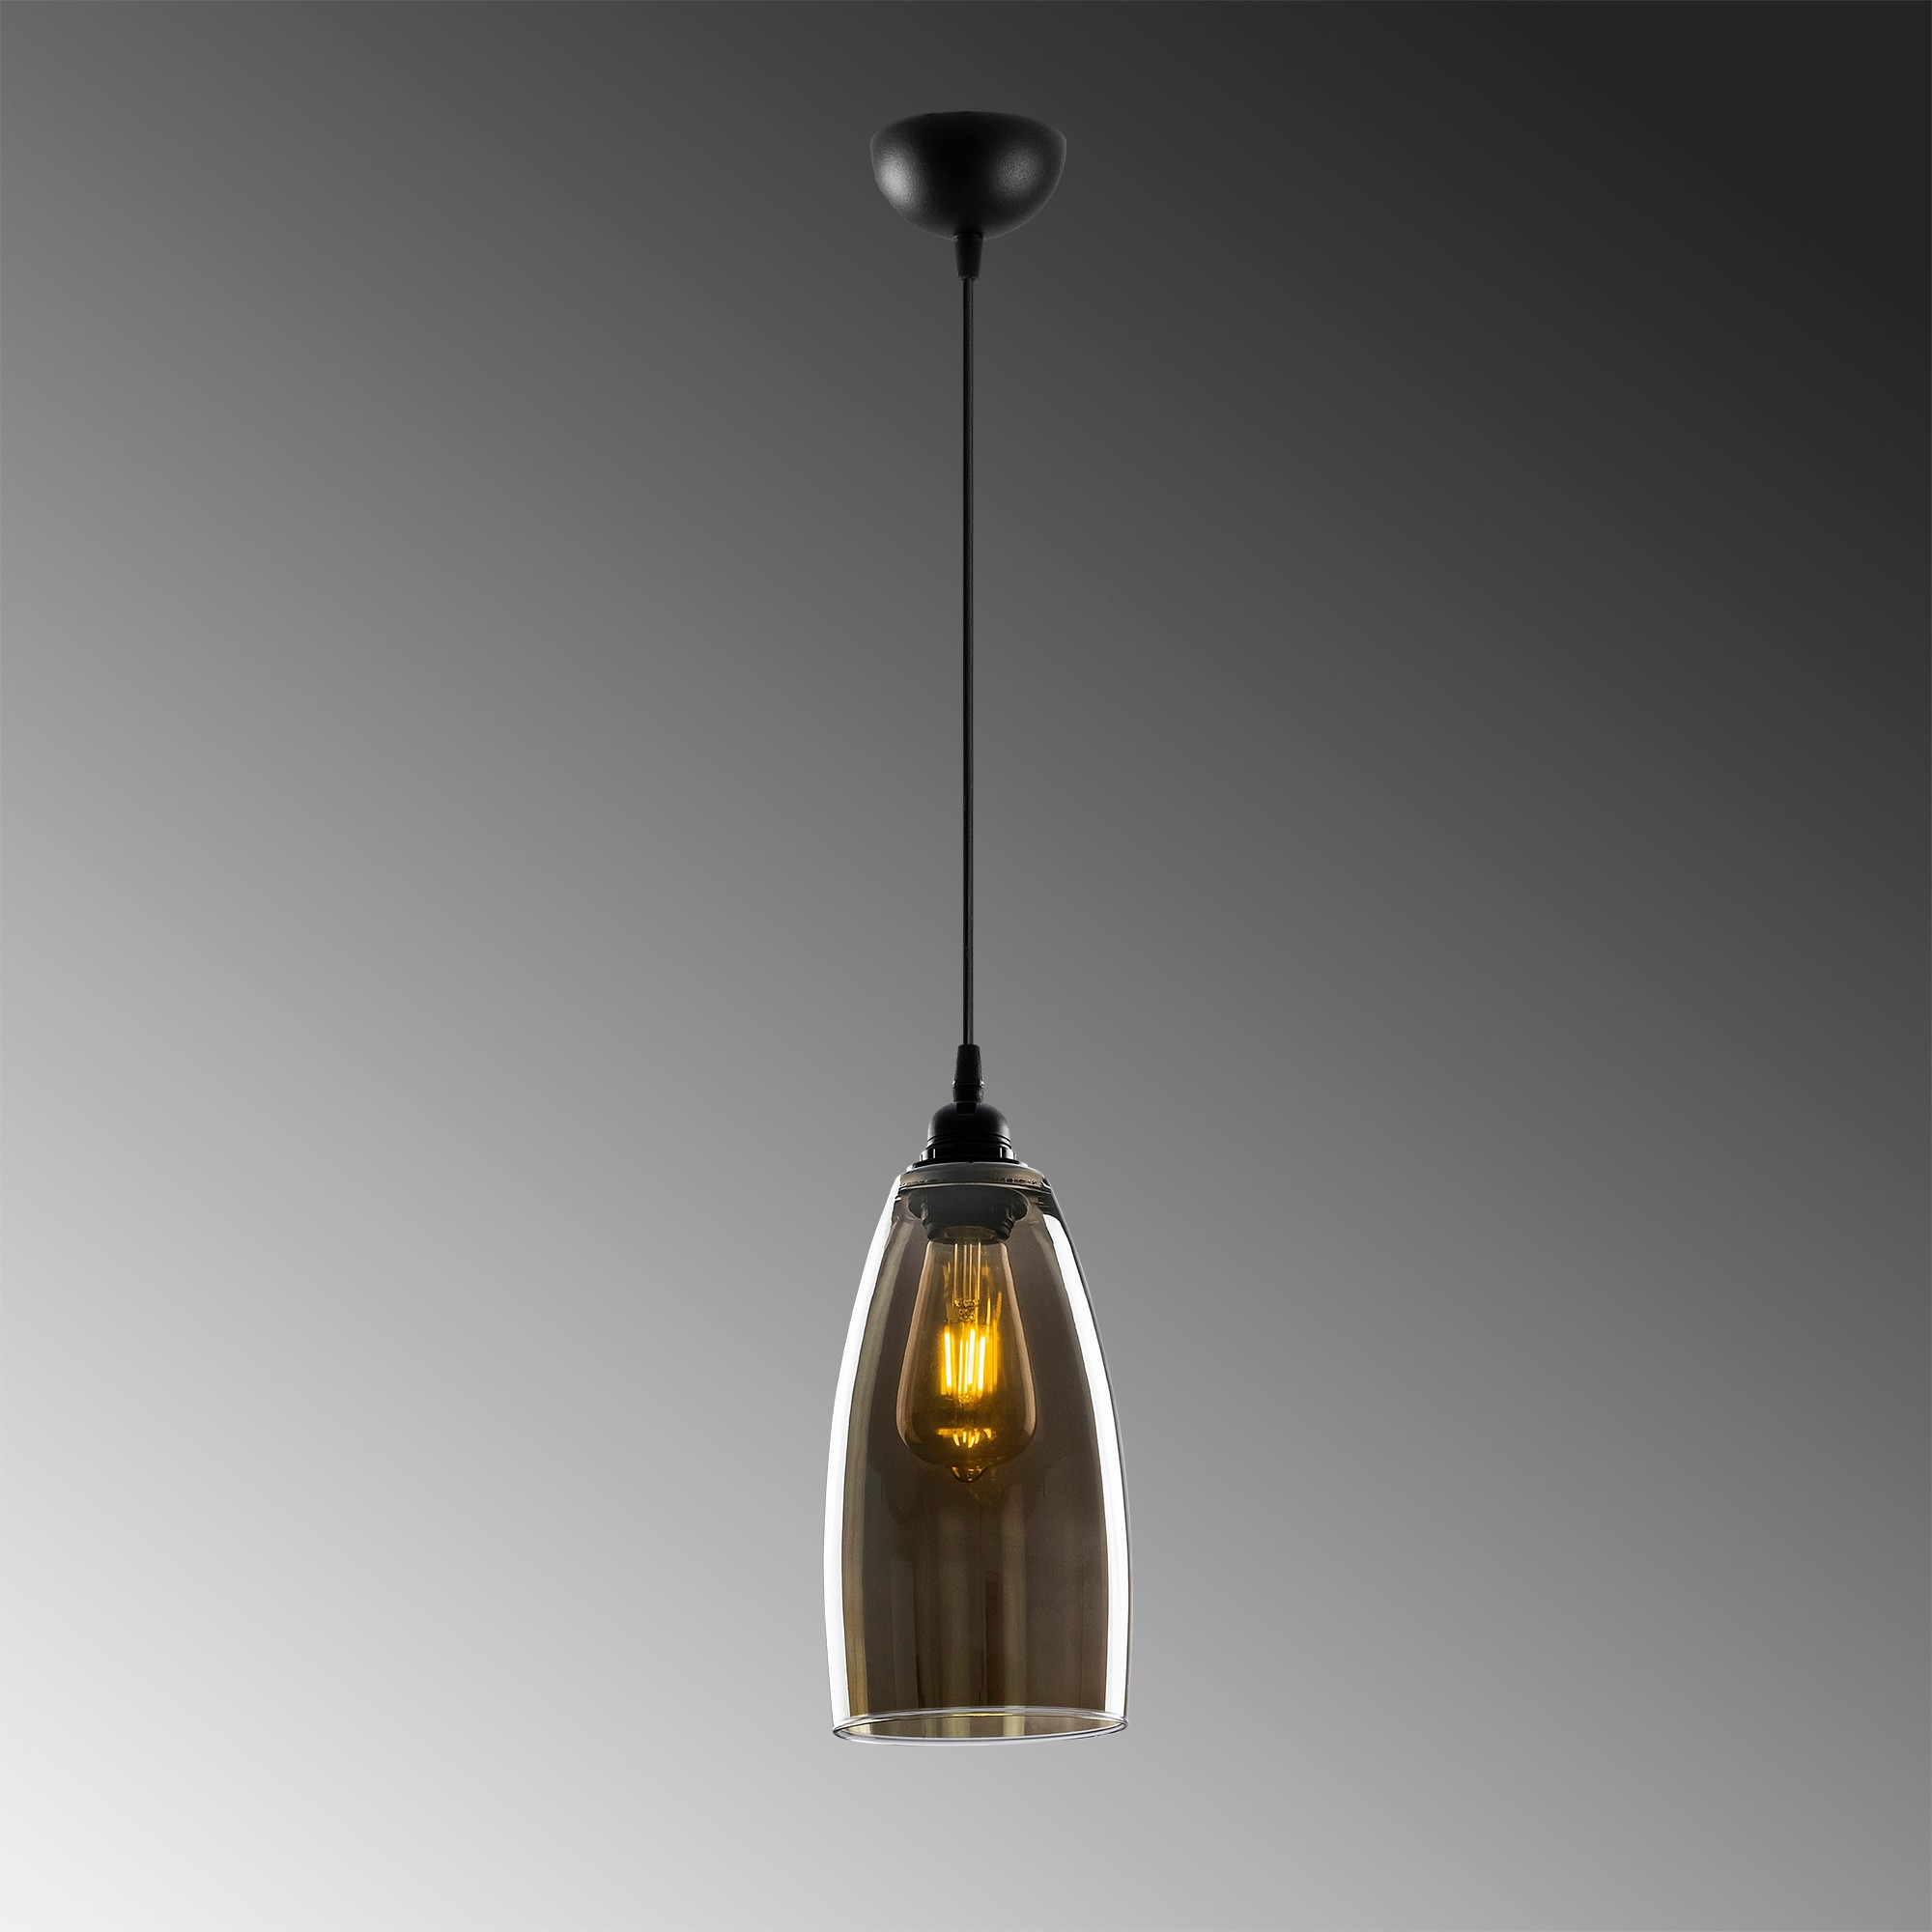 Hanglamp glad smoked glass langwerpig 1 x E27 fitting - grijze achtergrond